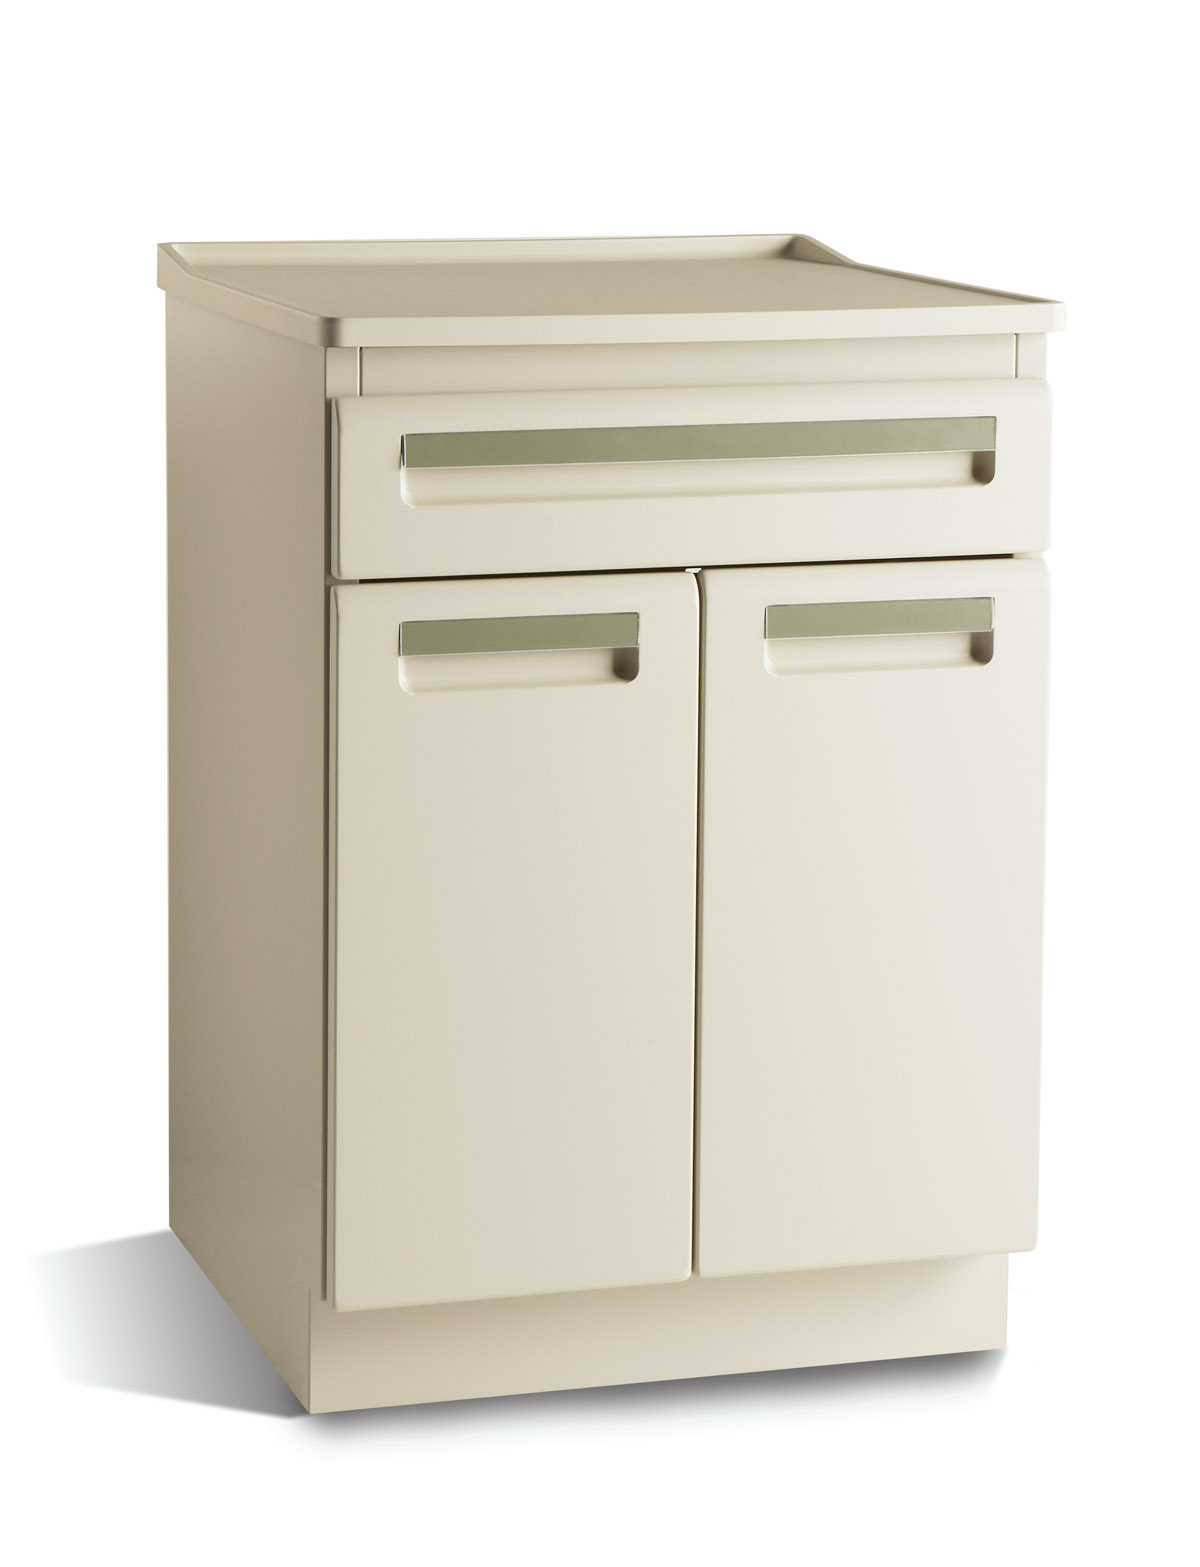 CABINET, TREATMENT, MIDMARK 6060, W/SHELF, GOLDEN ANIGRE